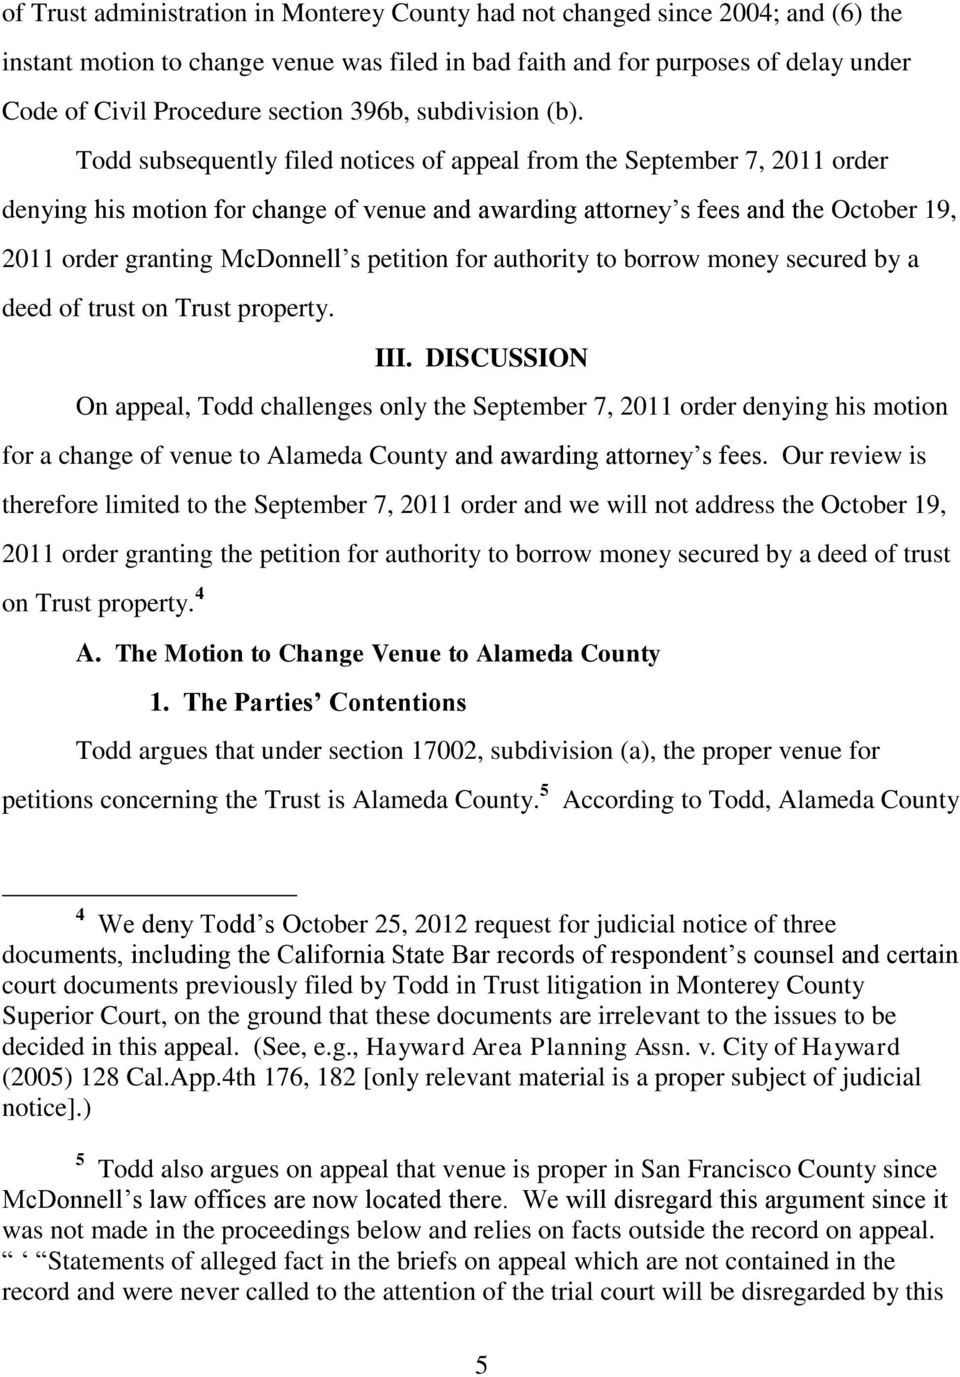 Todd subsequently filed notices of appeal from the September 7, 2011 order denying his motion for change of venue and awarding attorney s fees and the October 19, 2011 order granting McDonnell s